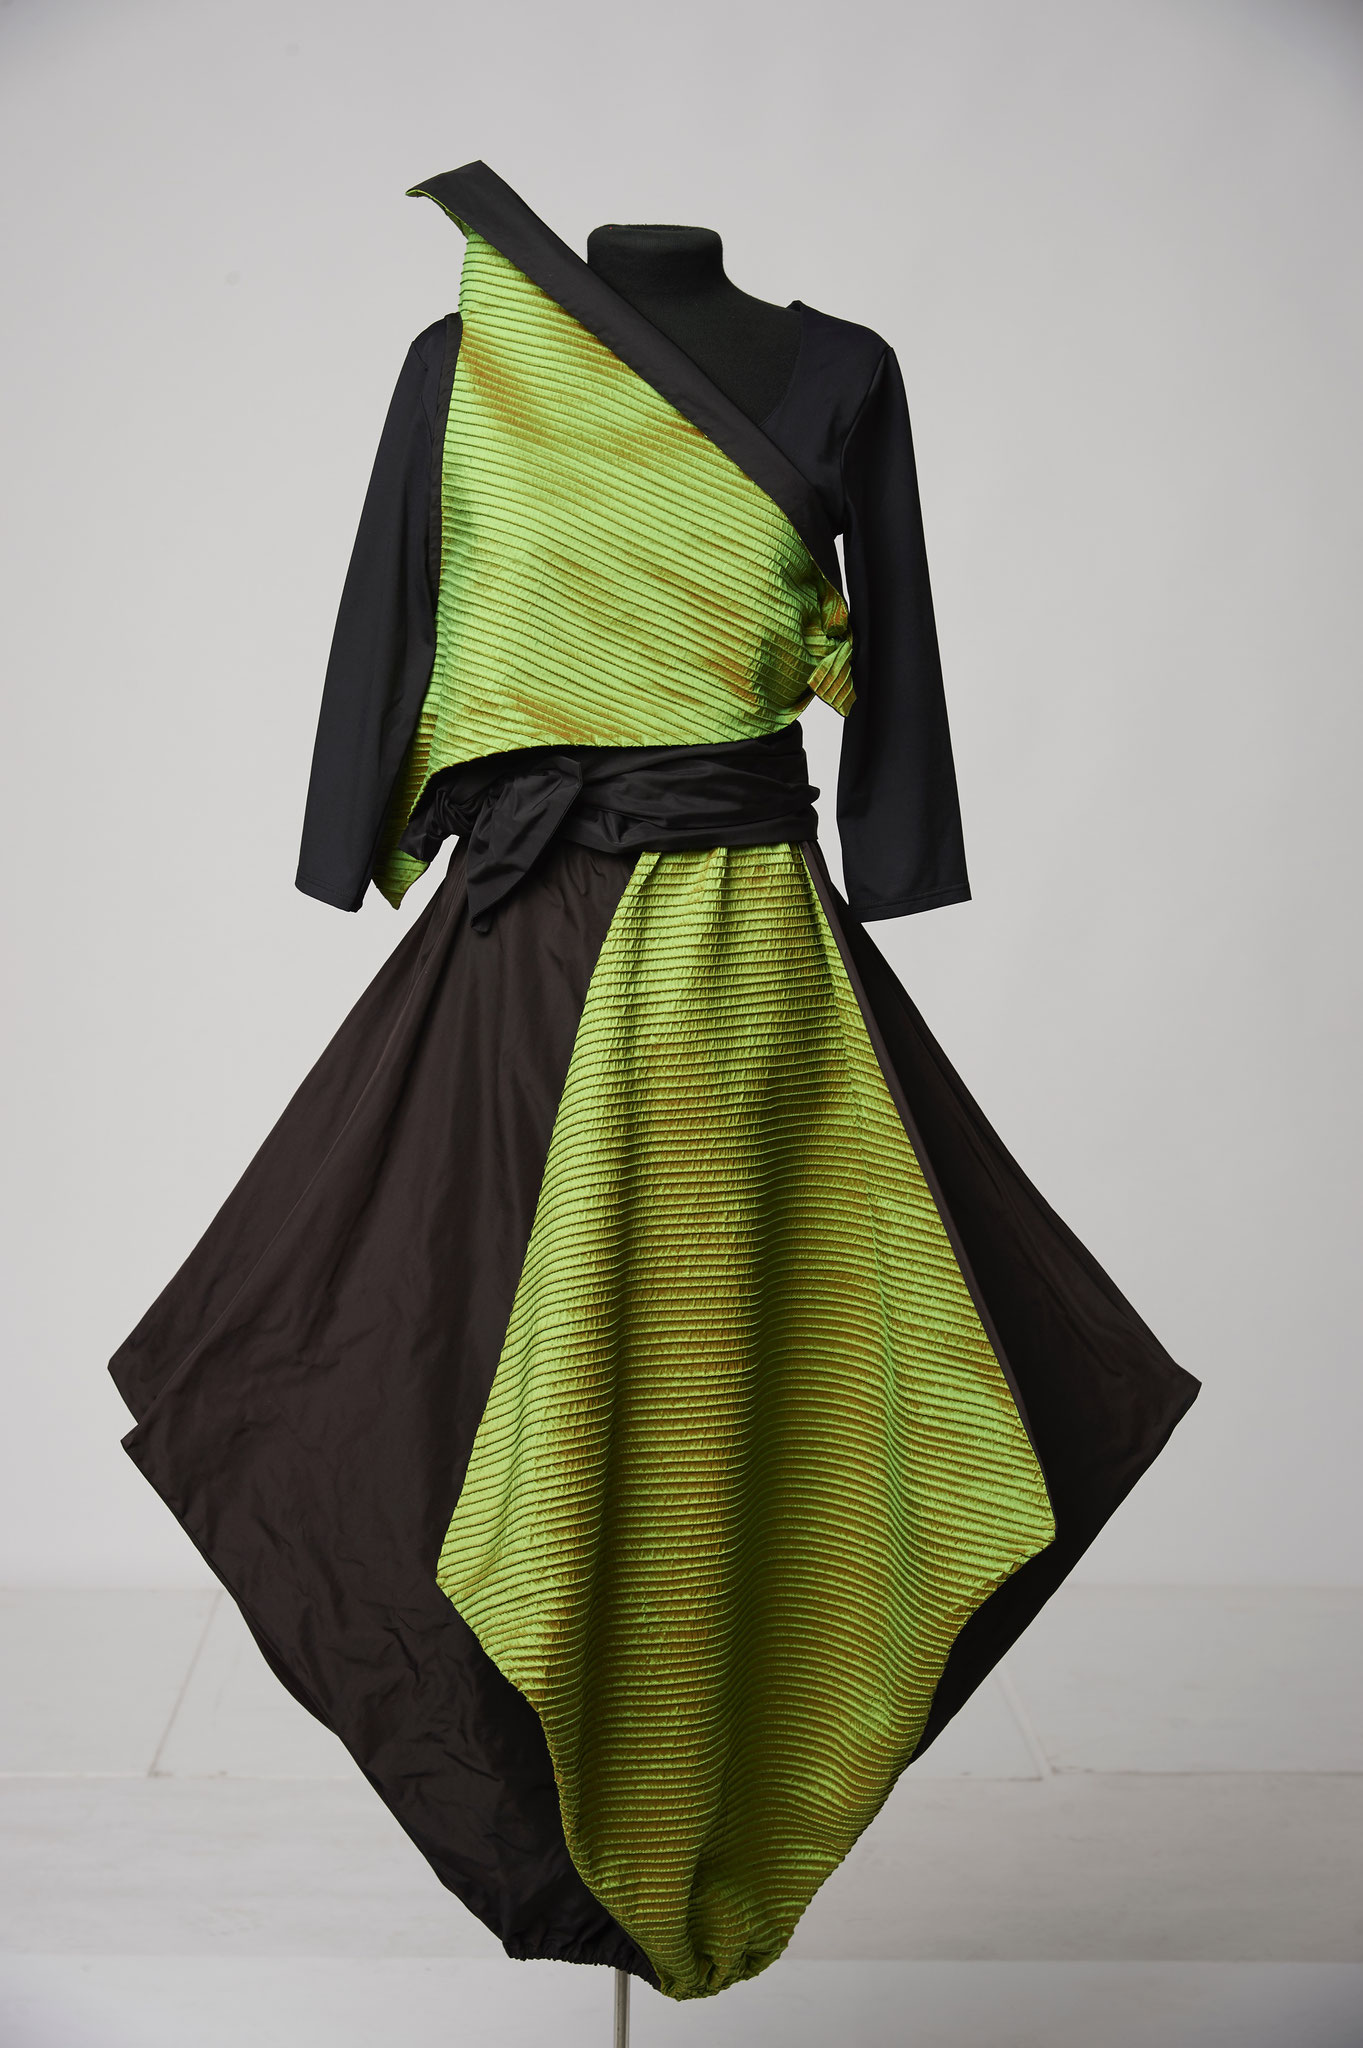 3-piece outfit: top, skirt and sash. Material: silk/microfibre